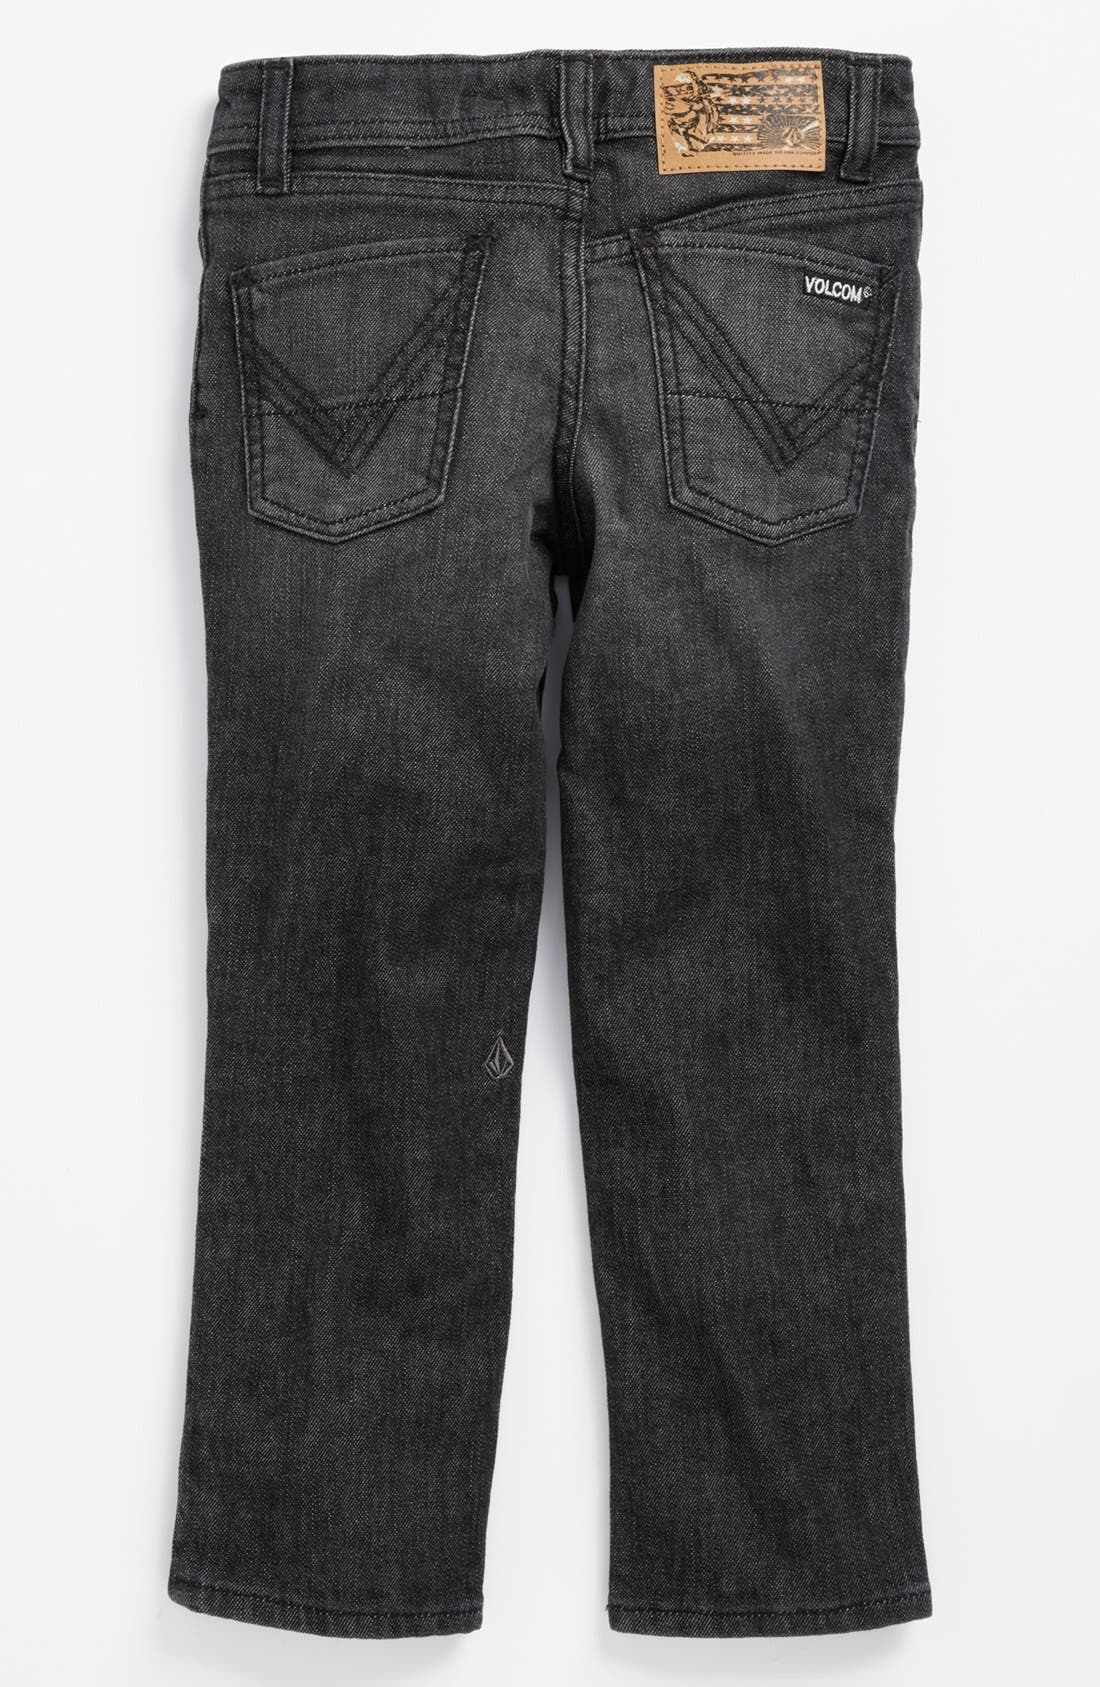 Alternate Image 1 Selected - Volcom 'Vorta' Slim Straight Leg Jeans (Little Boys)